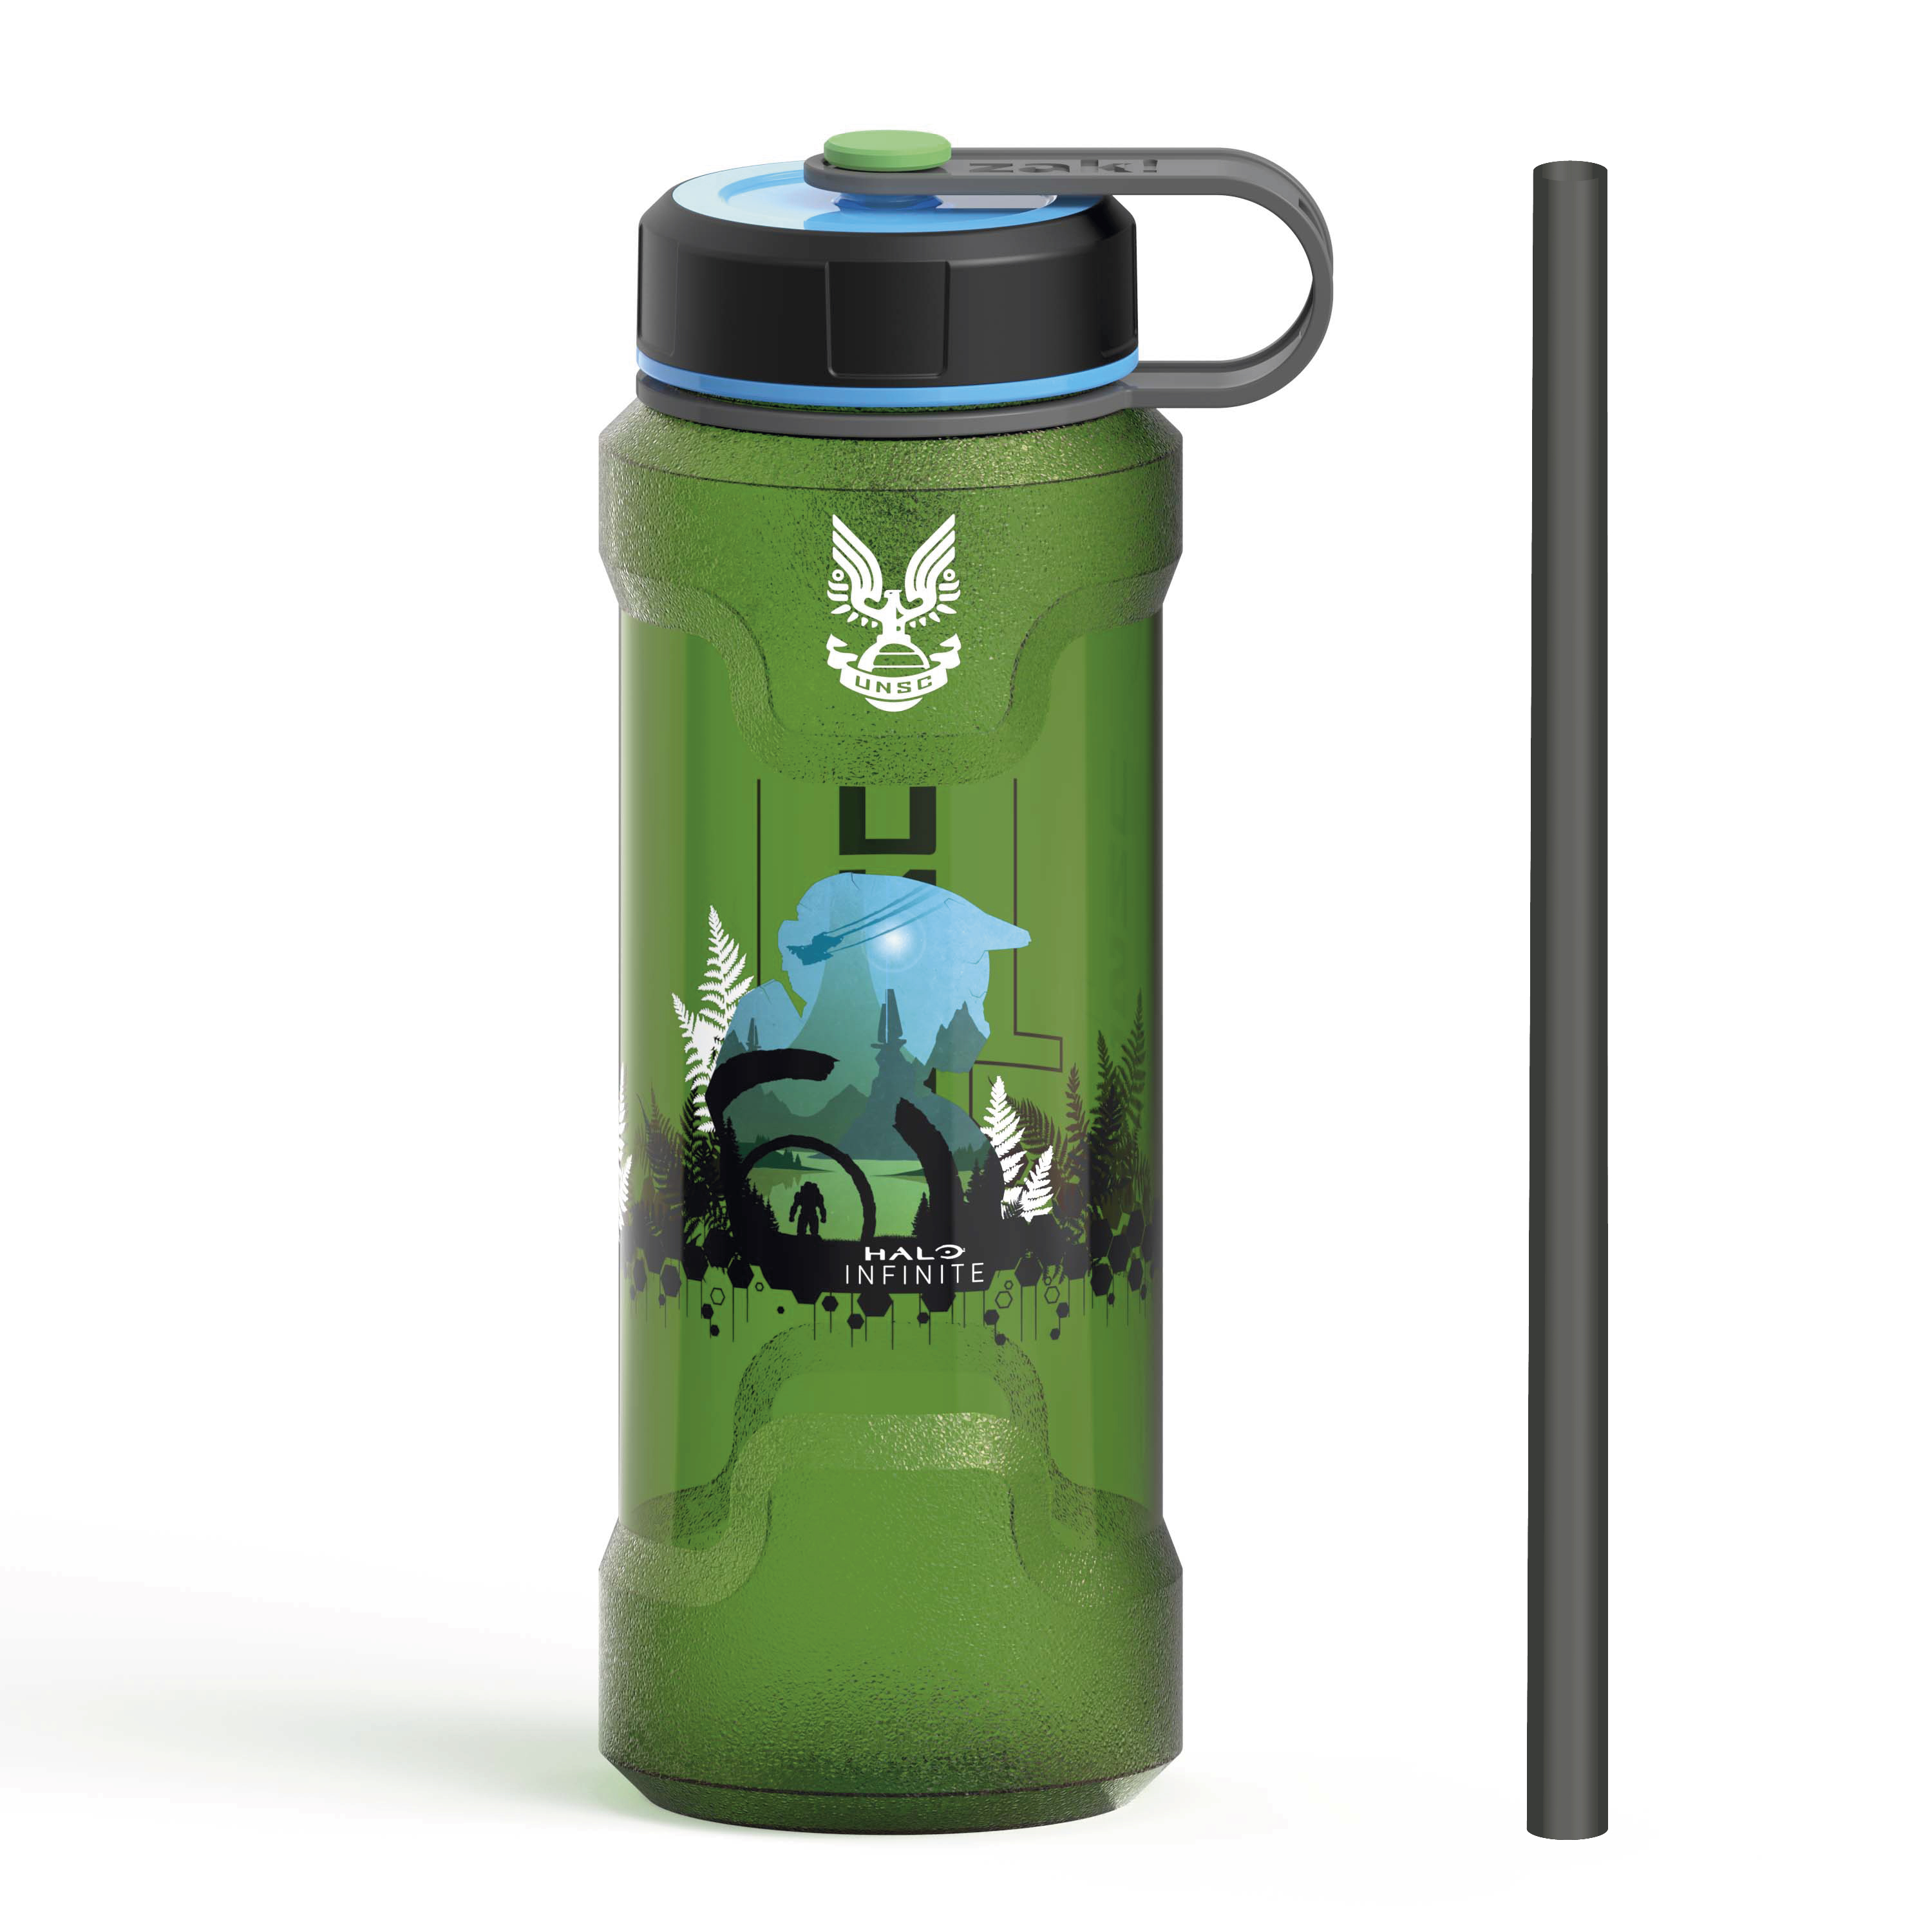 Halo 36 ounce Reusable Plastic Water Bottle, United Nations Space Command slideshow image 1